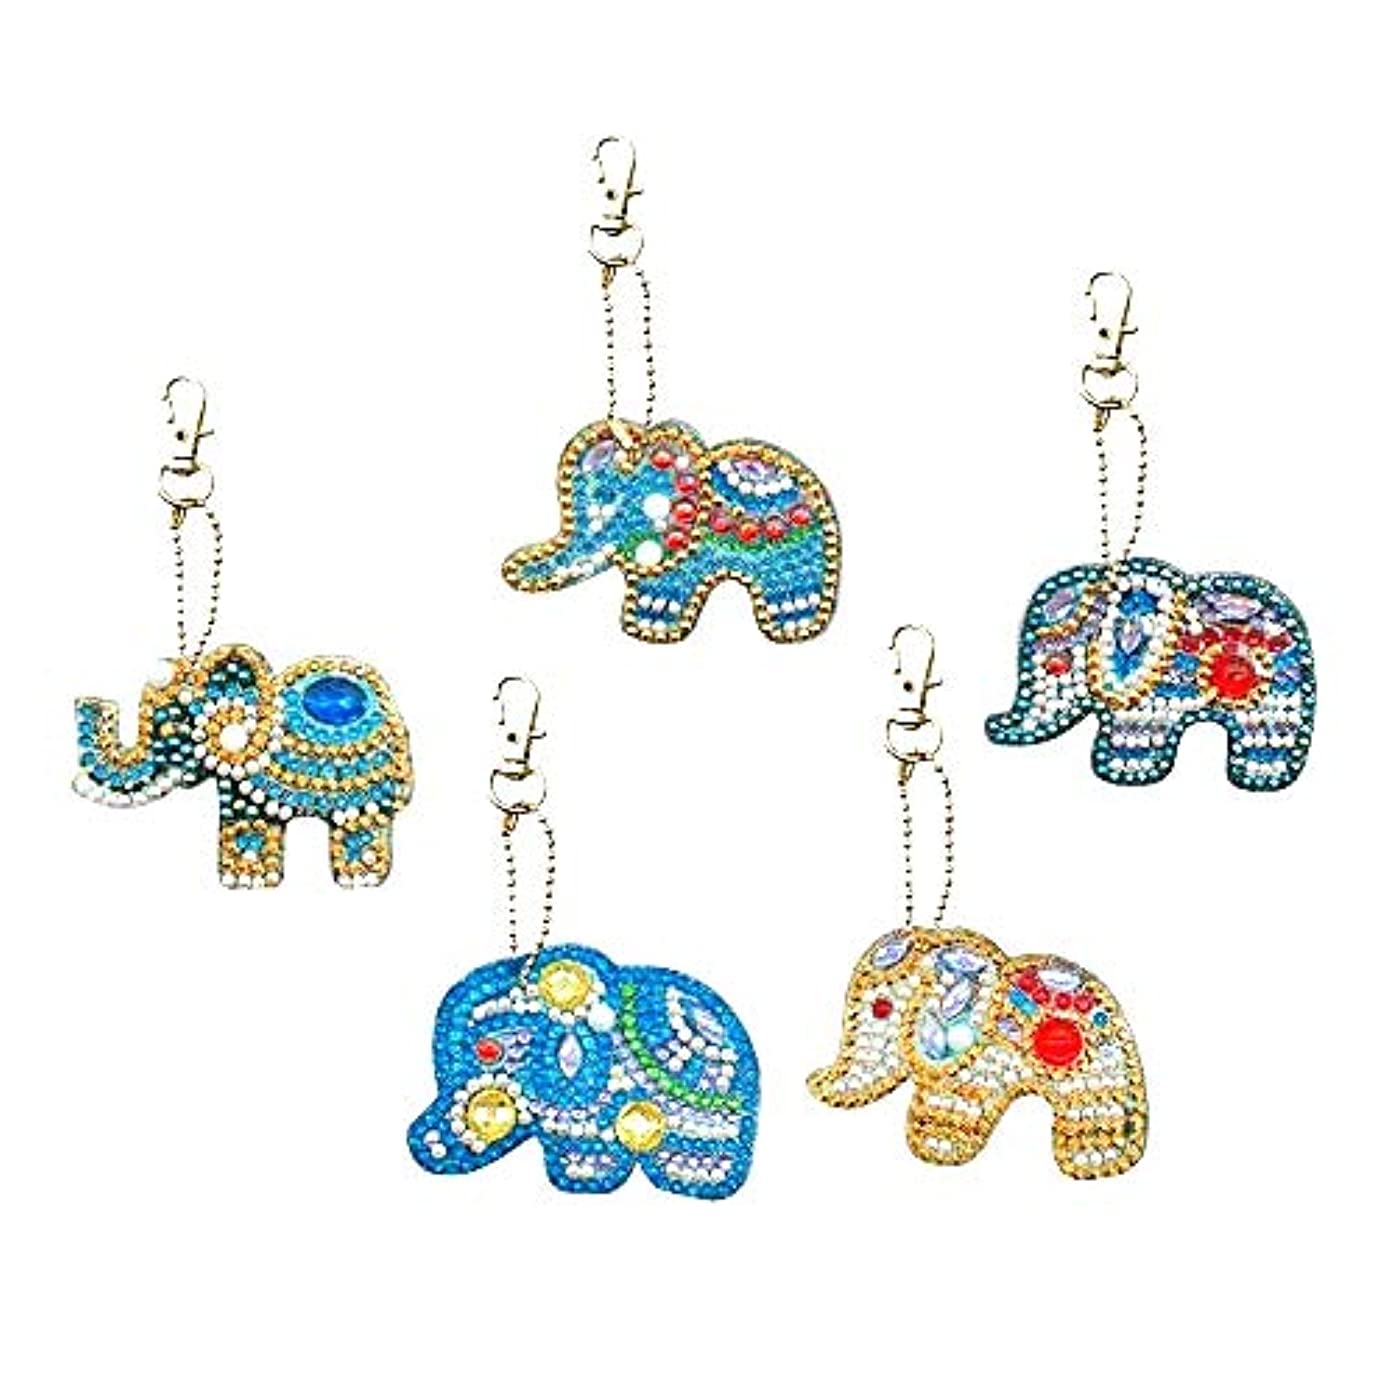 HuaCan 5 Pack DIY 5D Diamond Painting Elephant Keychain Round Drill Keyring Crystal Rhinestone Bag Pendant Cross Stitch Mosaic Arts Craft Paint by Number Kits for Kids Adults